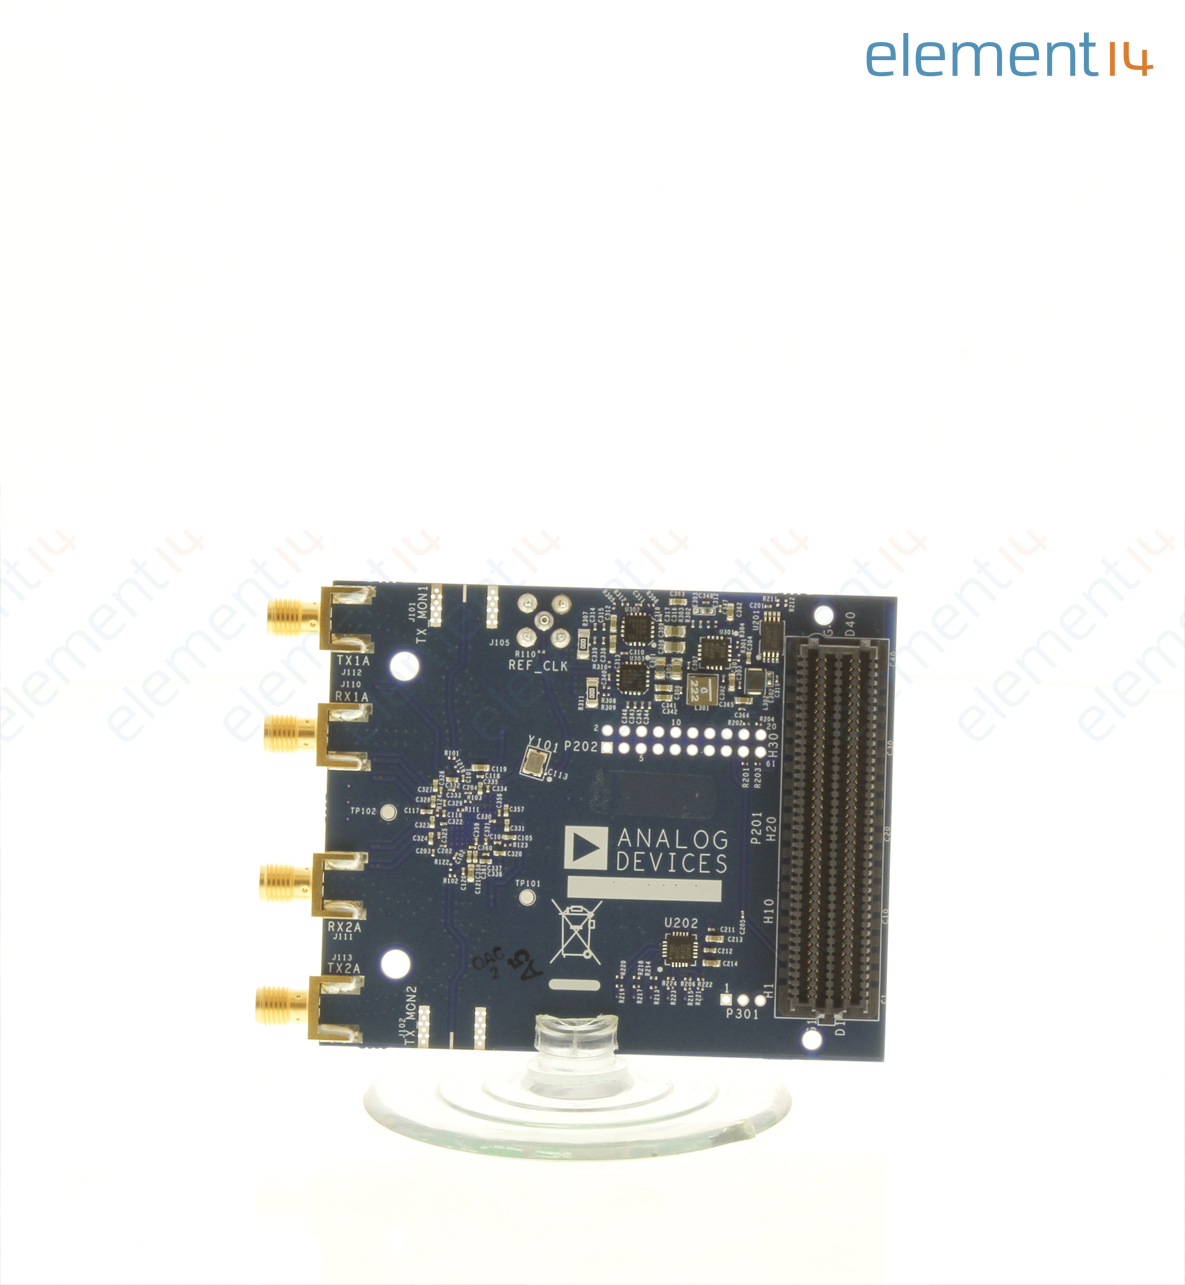 Evaluation Board, AD9361 2x2 Highly Integrated RF Transceiver, 70 MHz - 6  GHz, FMC Connector